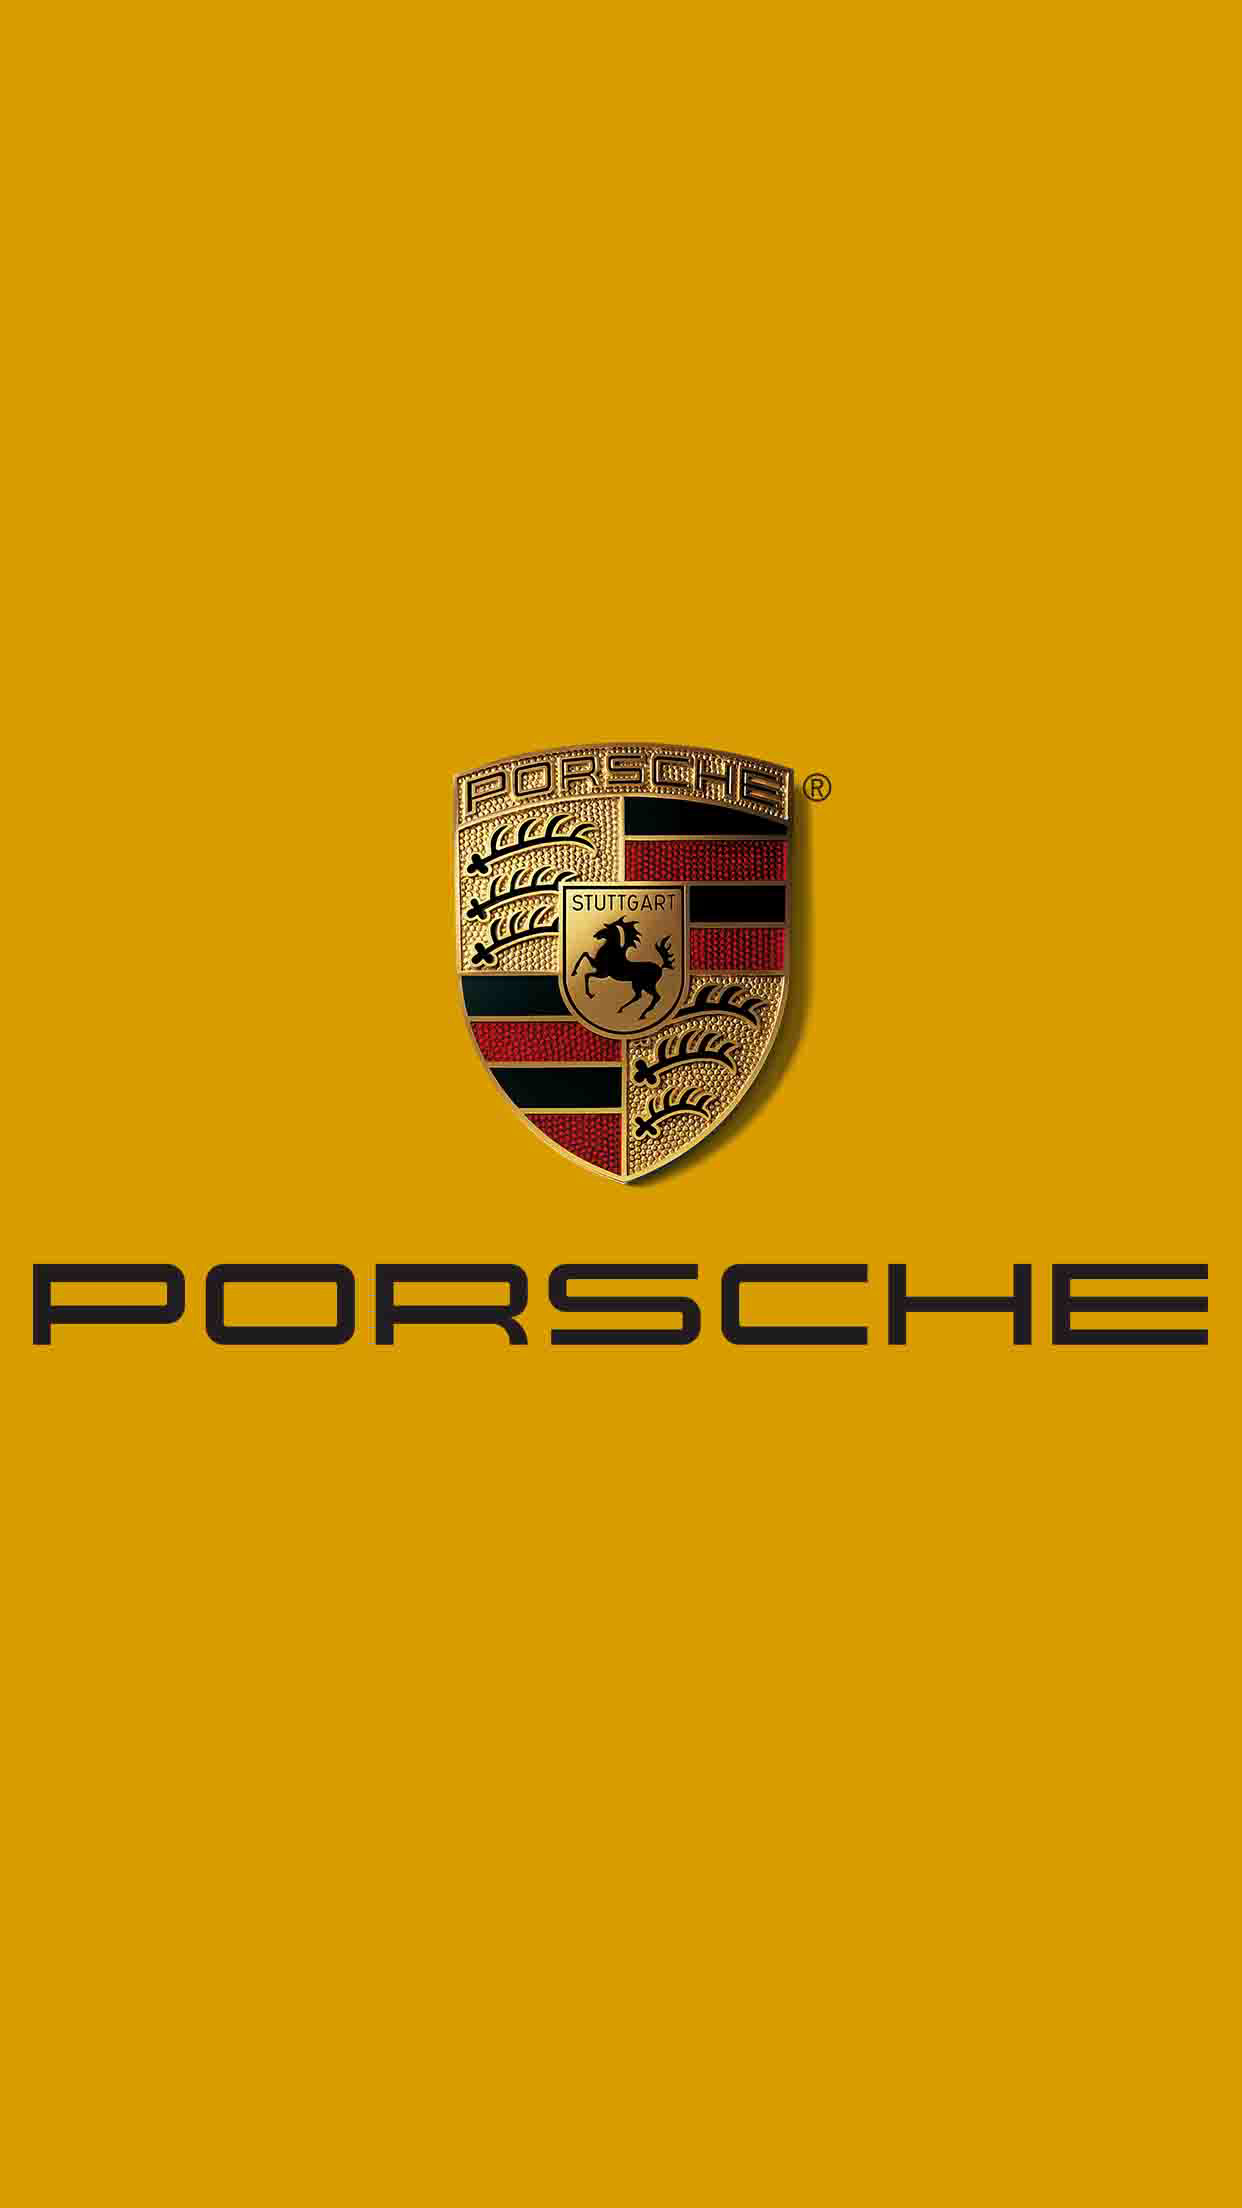 Porsche Custom wallpaper 4K